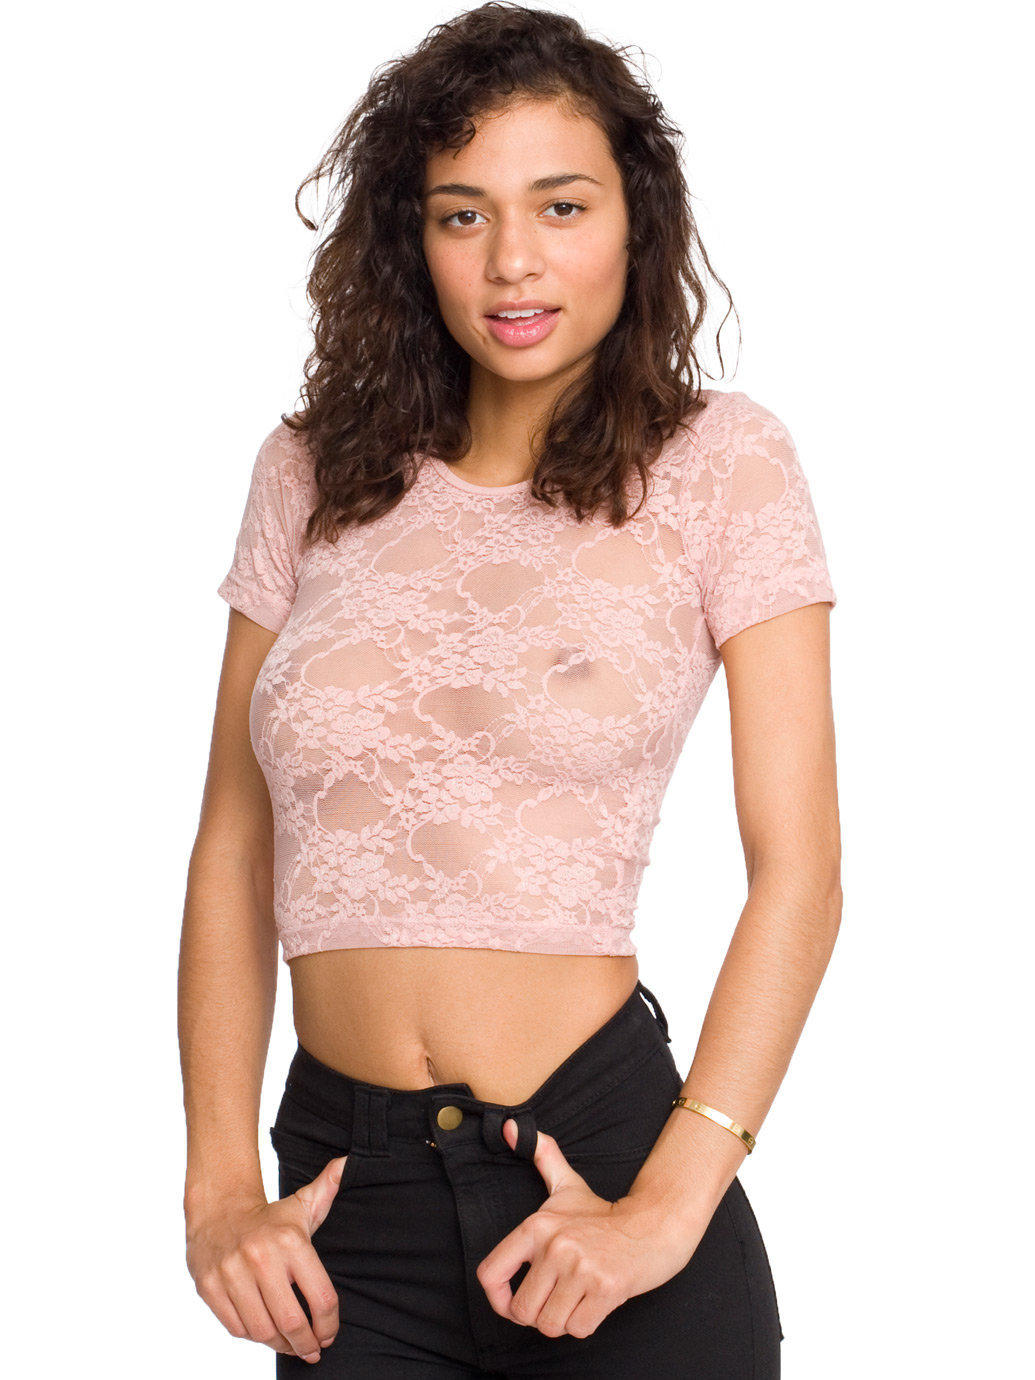 Sep 23,  · Black & White Collar Short Sleeve Girls Crop Top is rated out of 5 by 2. Rated 5 out of 5 by Zeez from Creepy cute Velvet material is extremely comfortable and fits true to size. Just the right amount of creepy and cute.